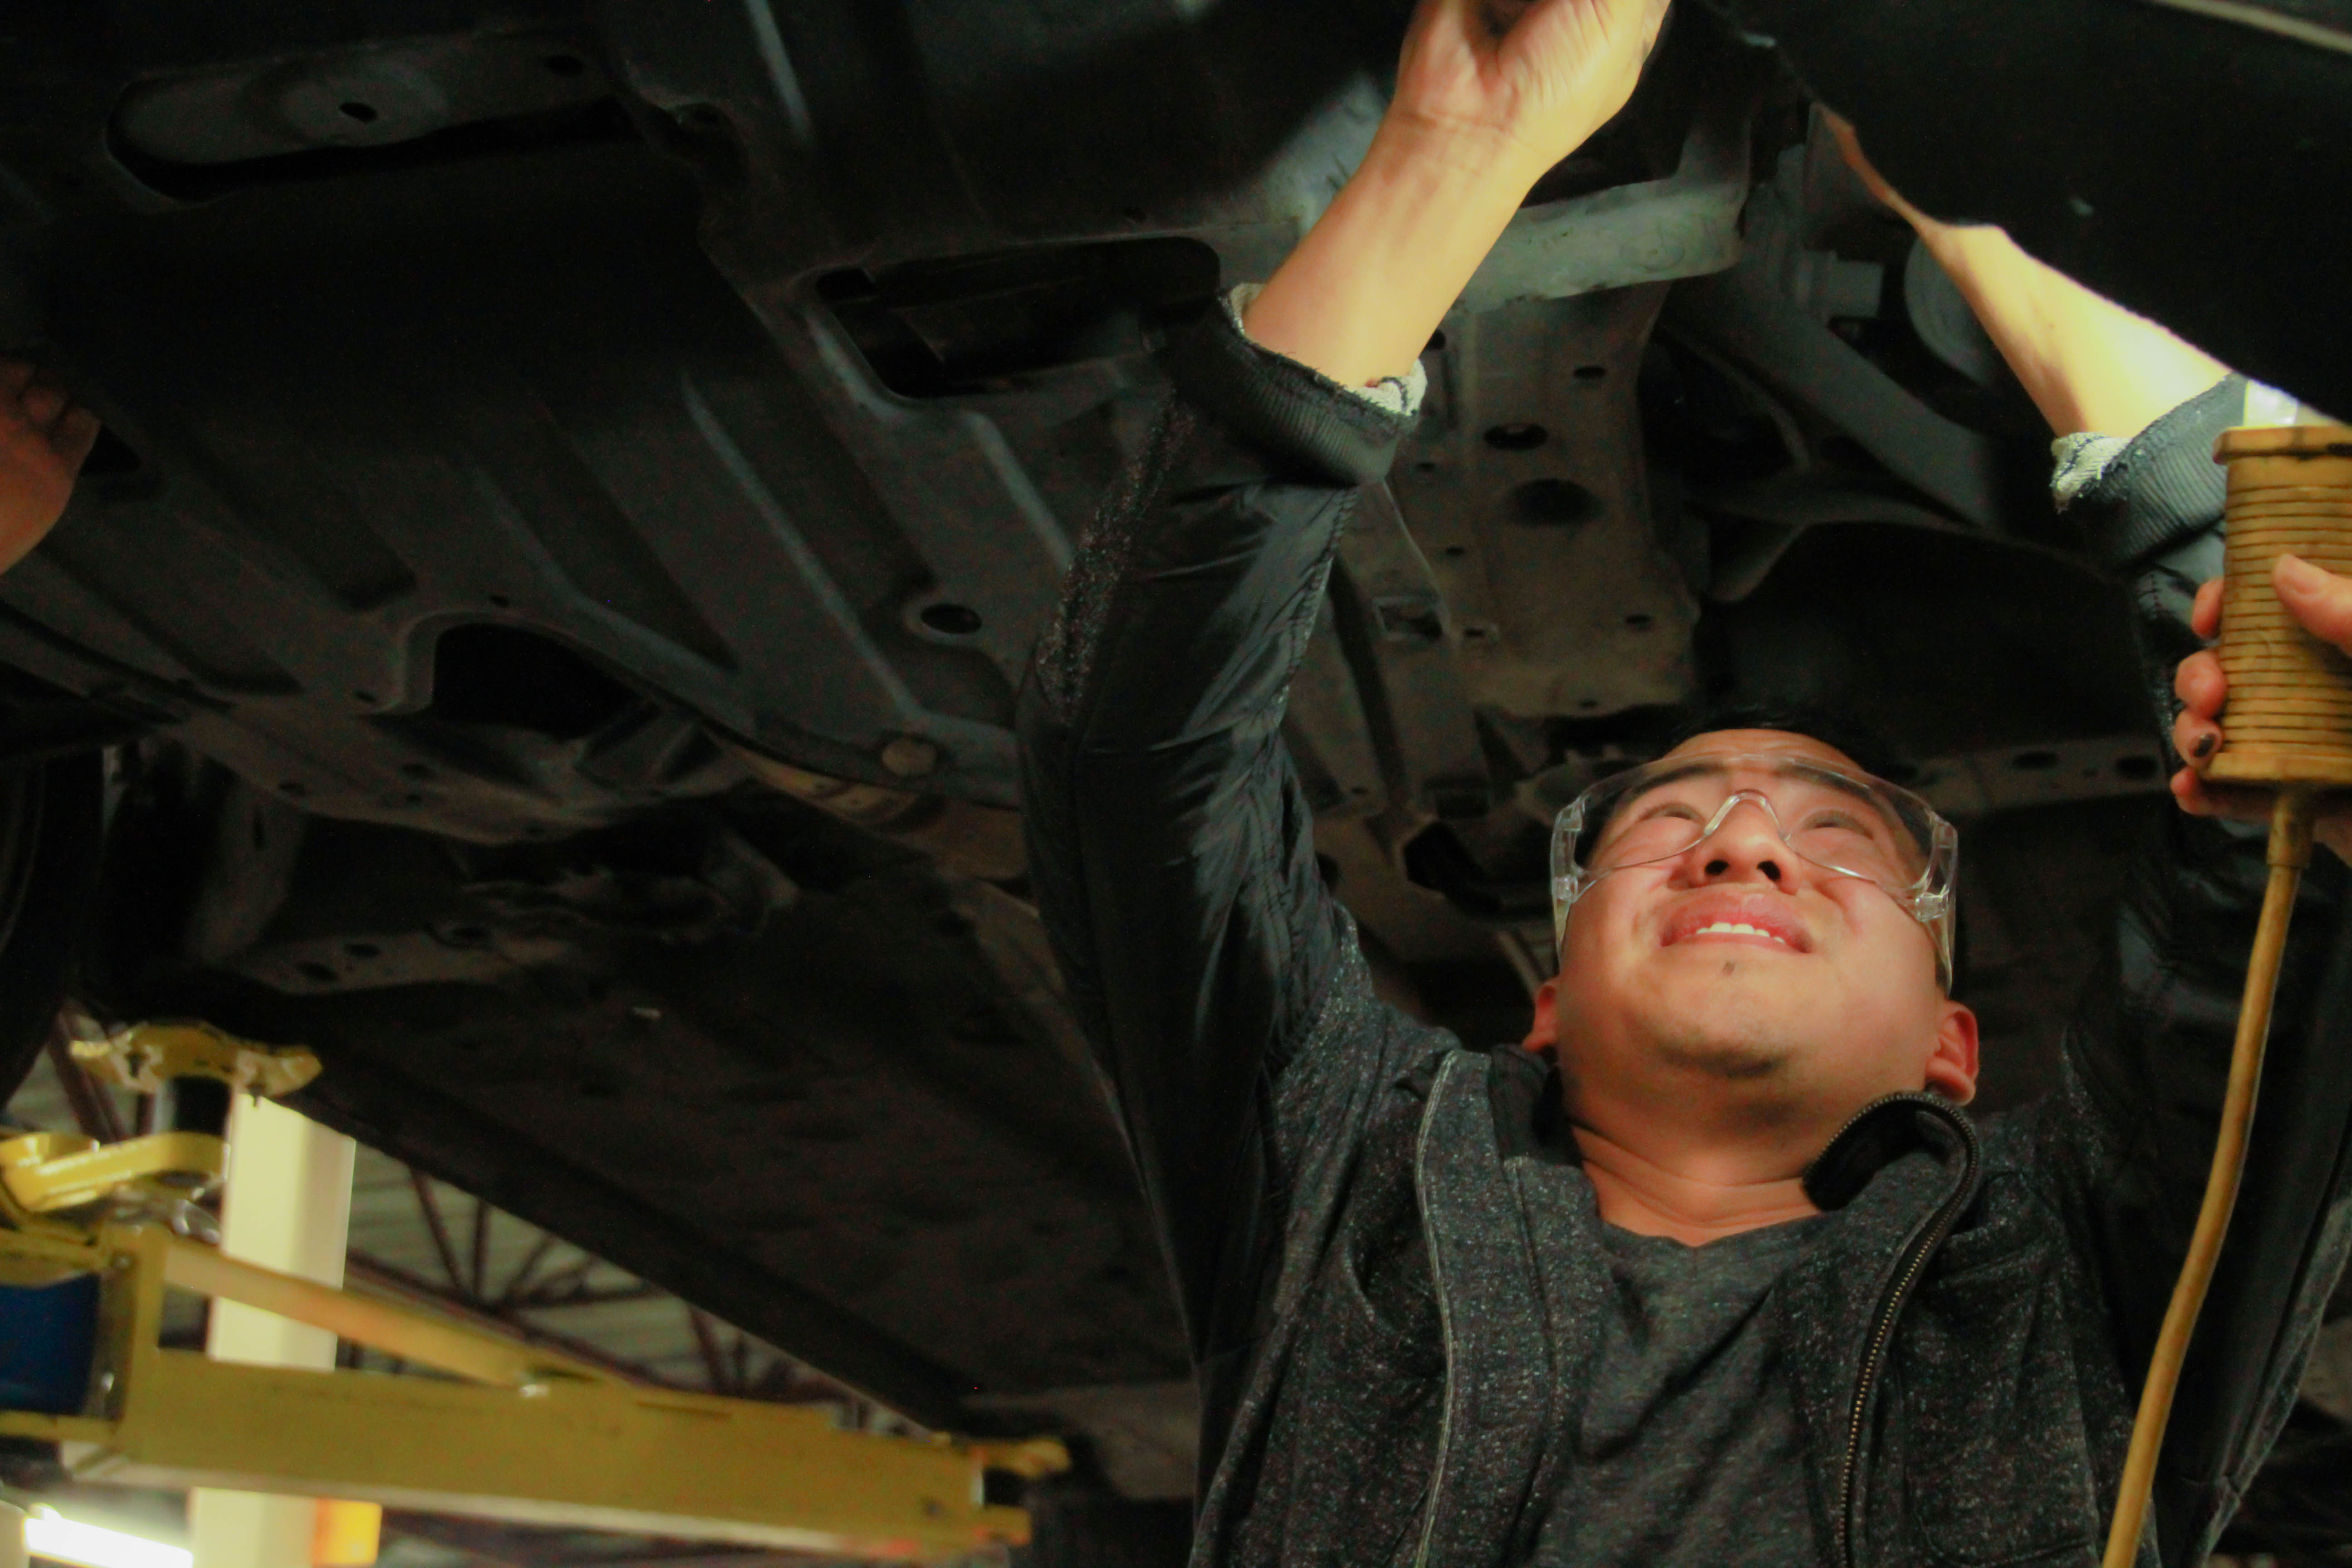 Byron Mejia, 28, works on his car at the City College Evans Campus during an automotive course that teaches students basic auto maintenance. Photo by Karen A Sanchez/The Guardsman